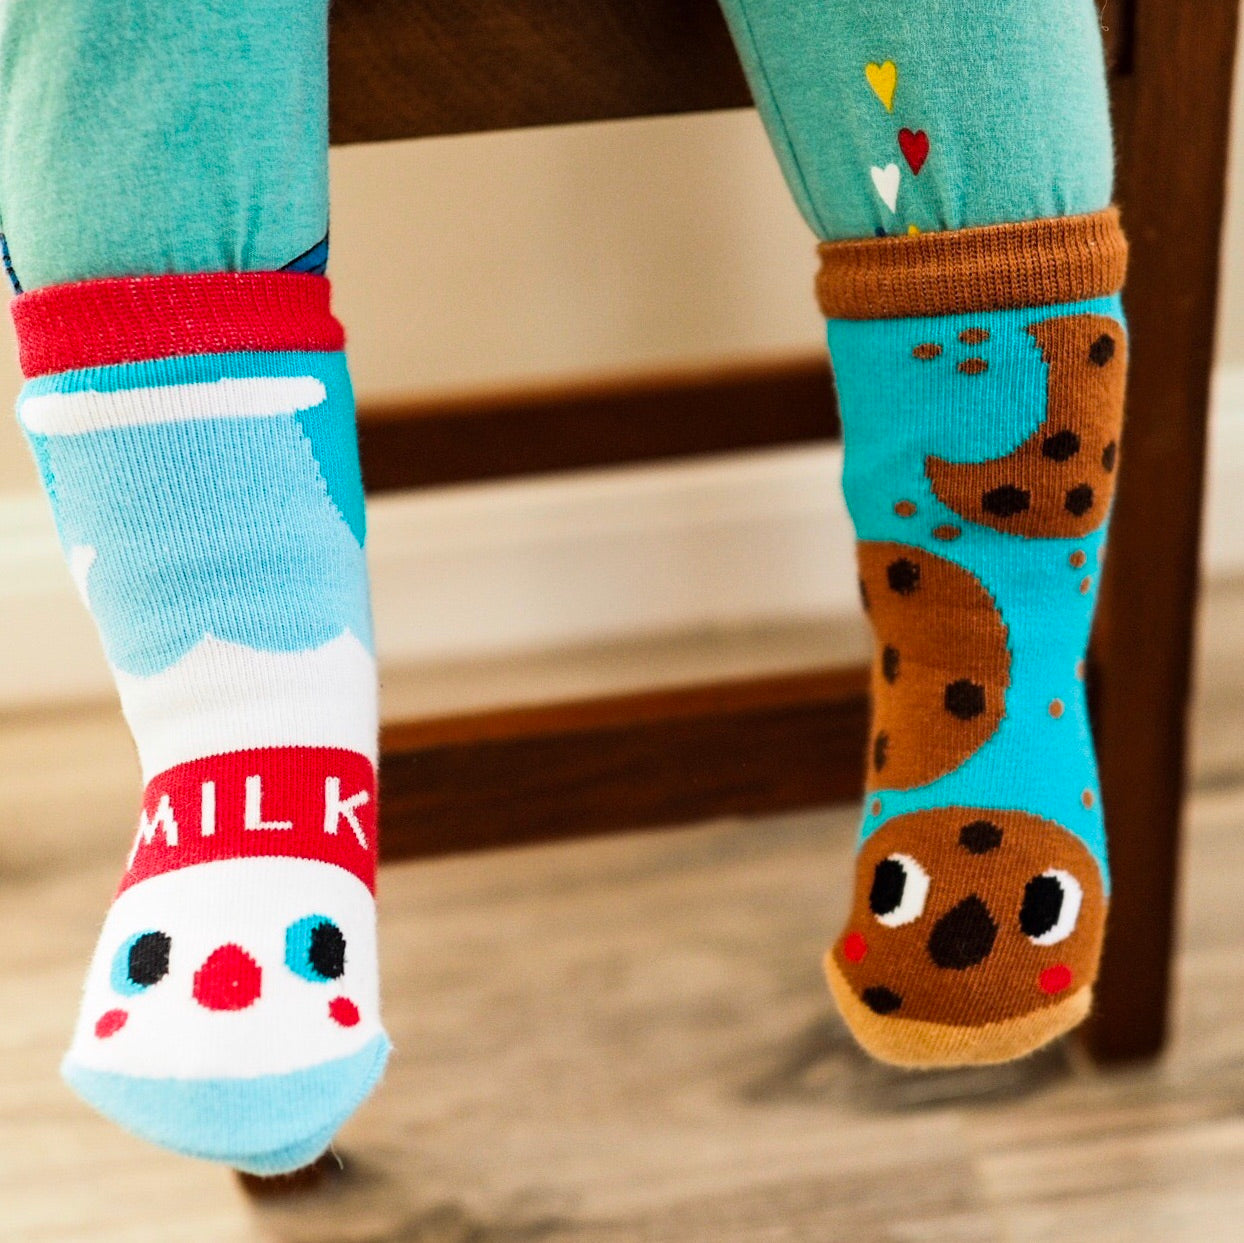 Pals Socks - Milk & Cookies - Kids collectible mismatched socks, Socks, Pals Socks, Baby goes Retro - Baby goes Retro